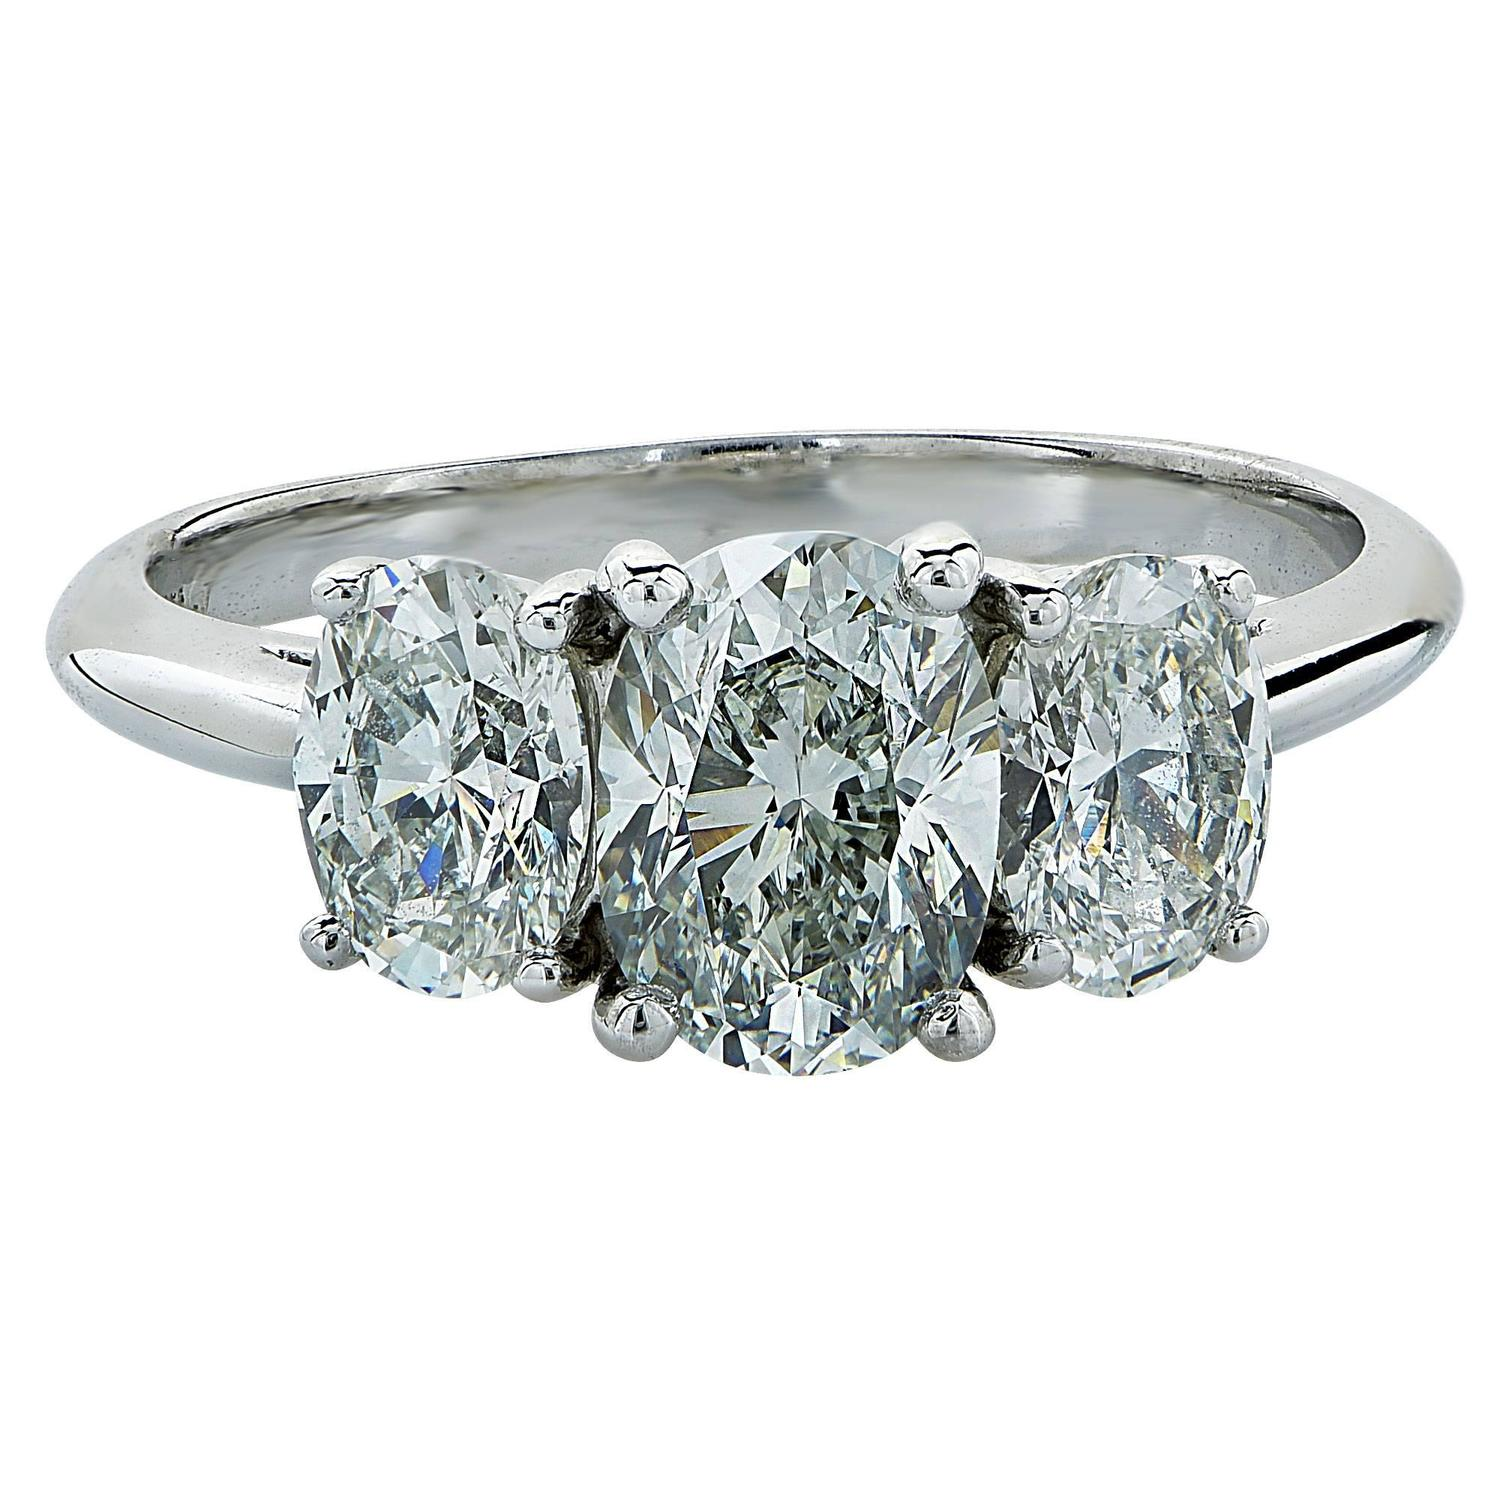 Tiffany and Co 2 21 Carat Diamond Platinum Engagement Ring at 1stdibs